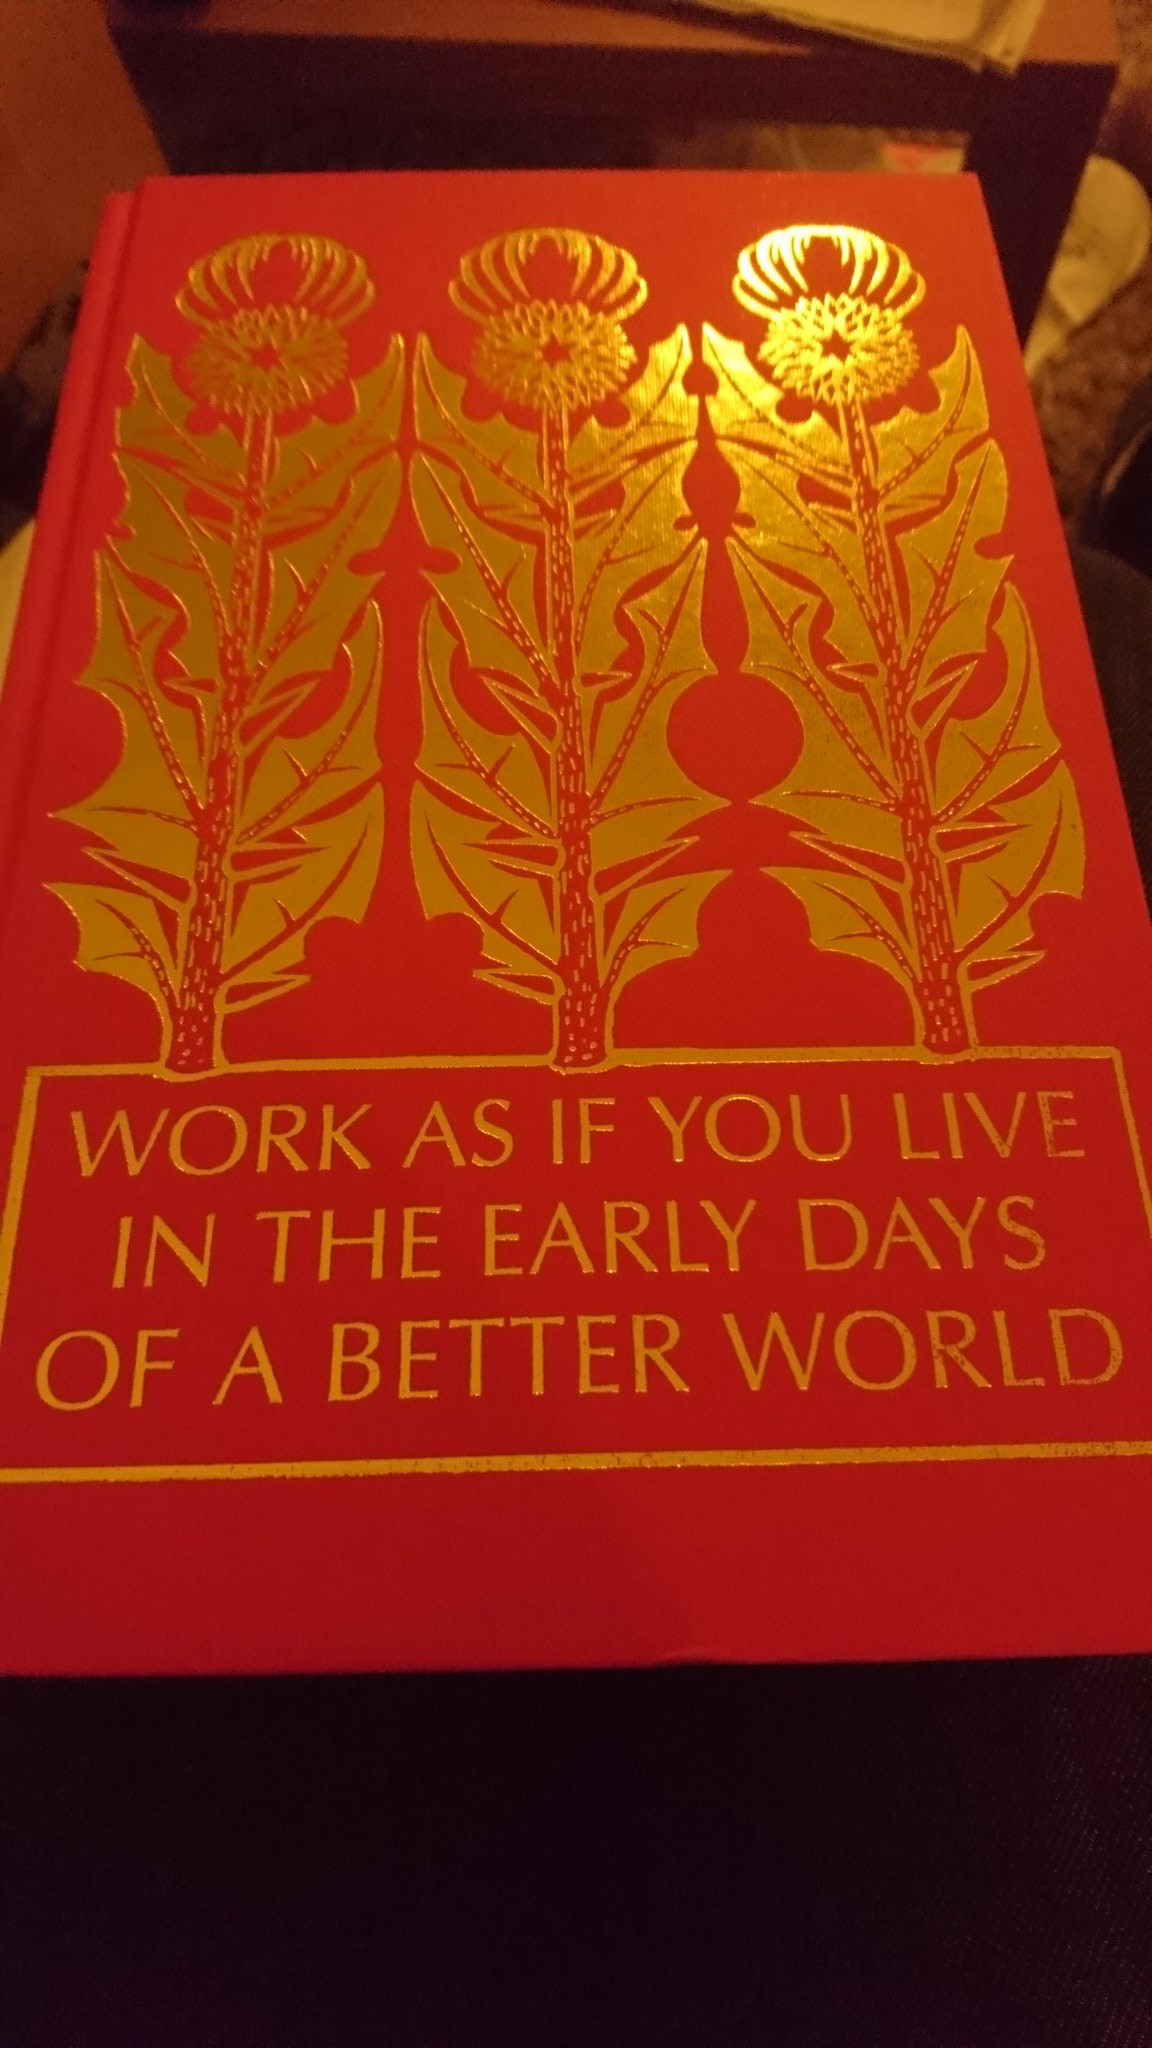 [Image] Work as if you live in the early days of a better World.